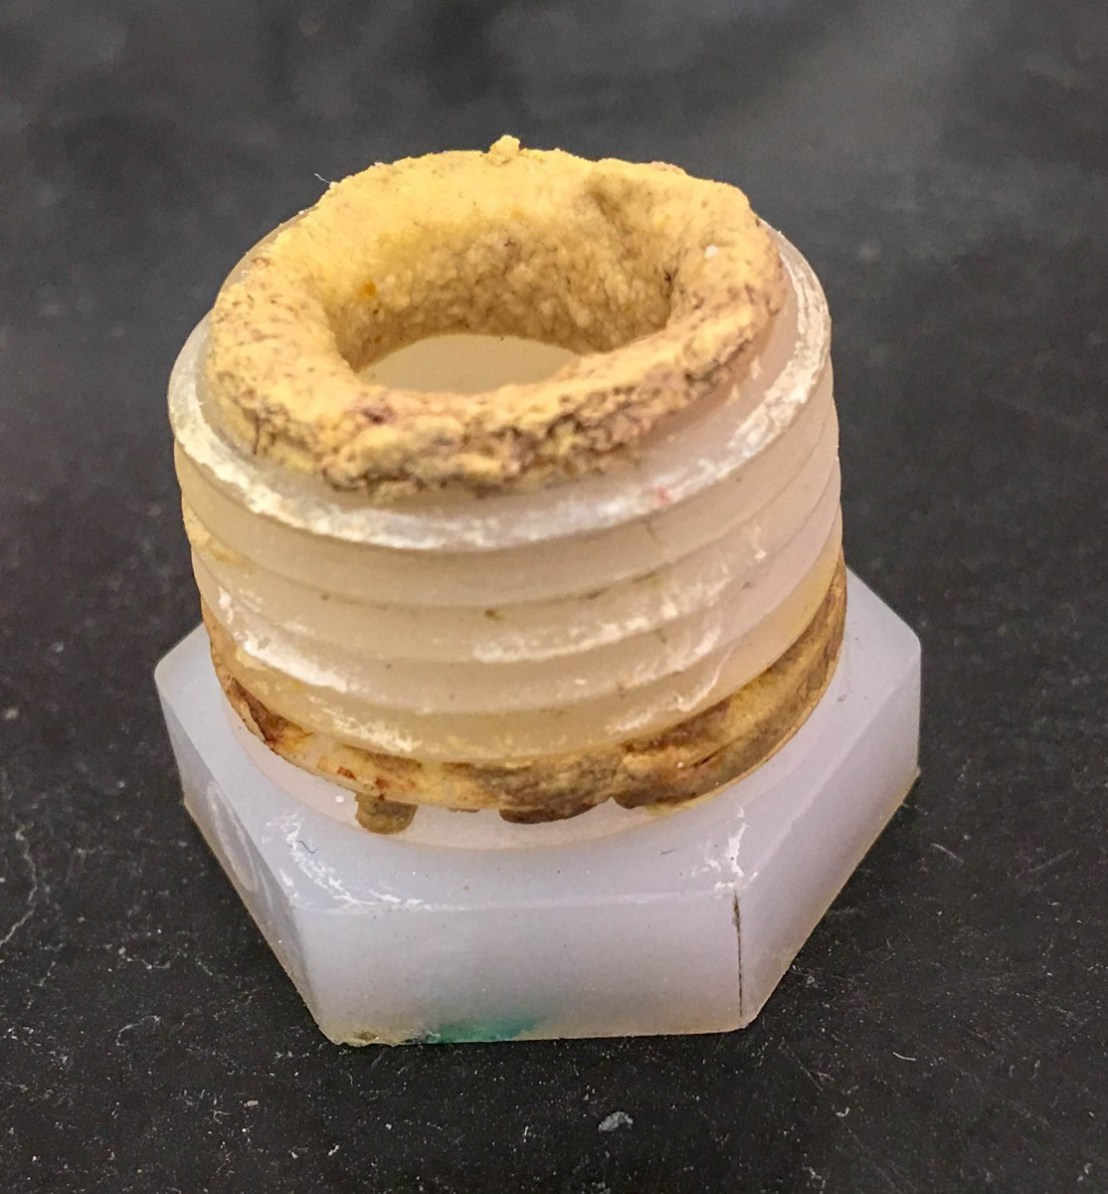 Original Atwood Hot Water Heater Drain Plug With Some Sort of Brown Sealer Material